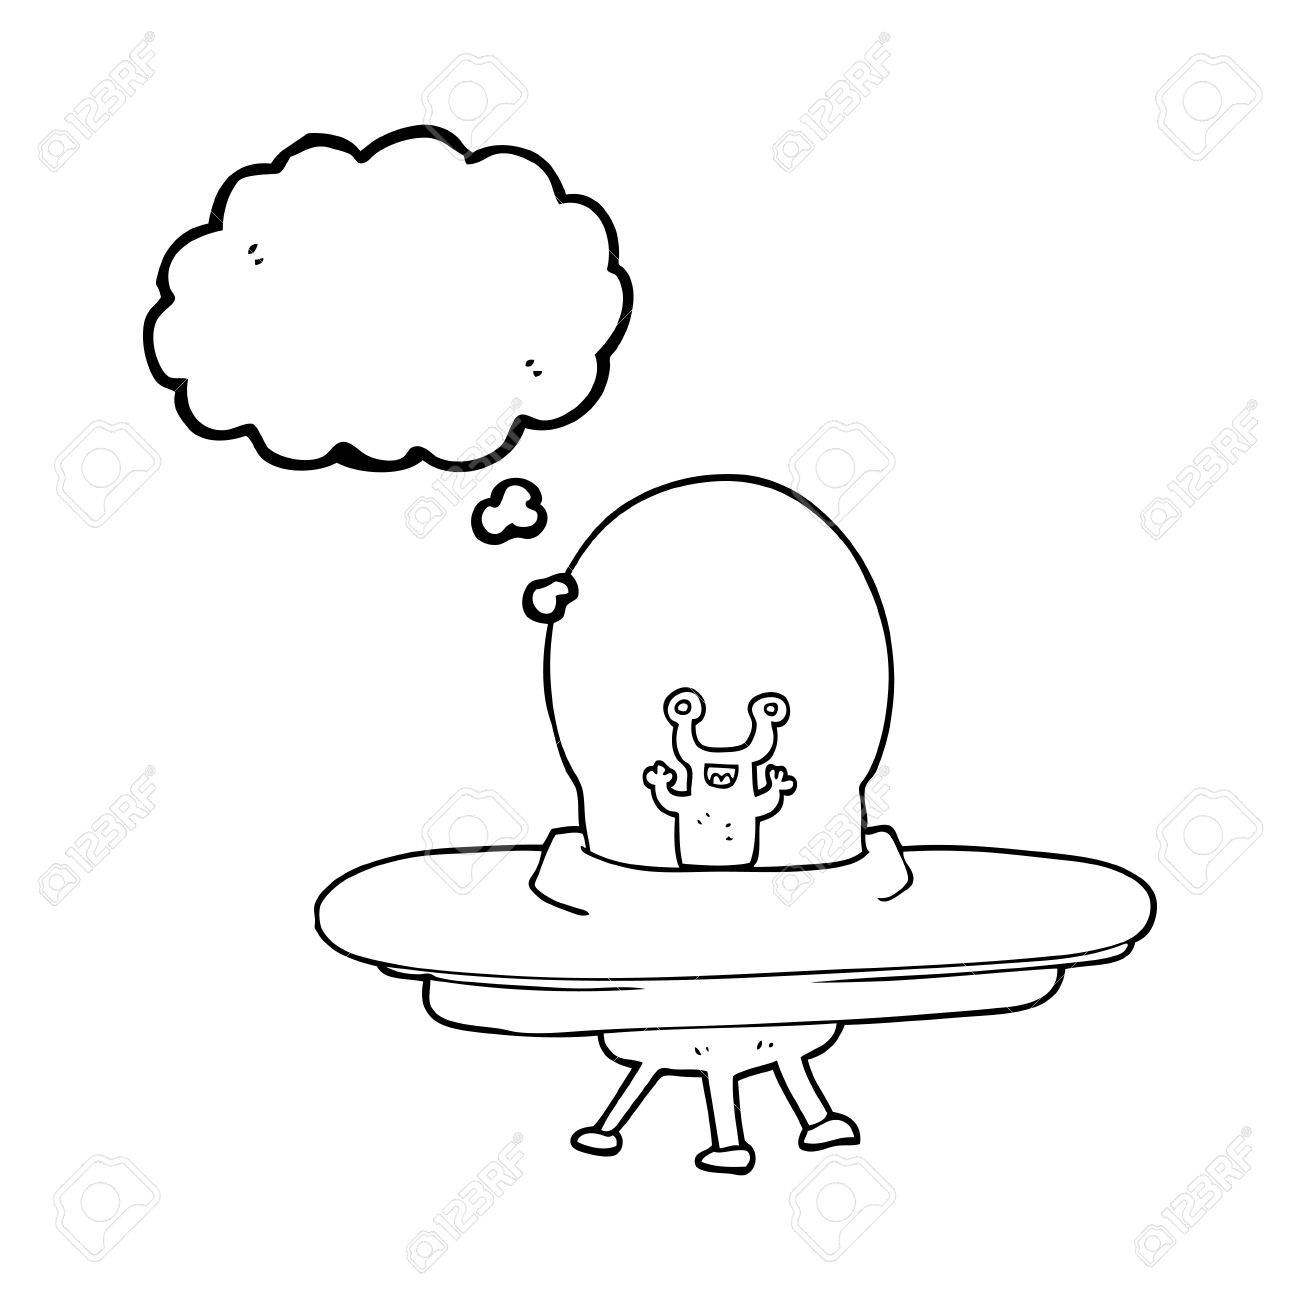 1300x1300 Freehand Drawn Thought Bubble Cartoon Alien Spaceship Royalty Free